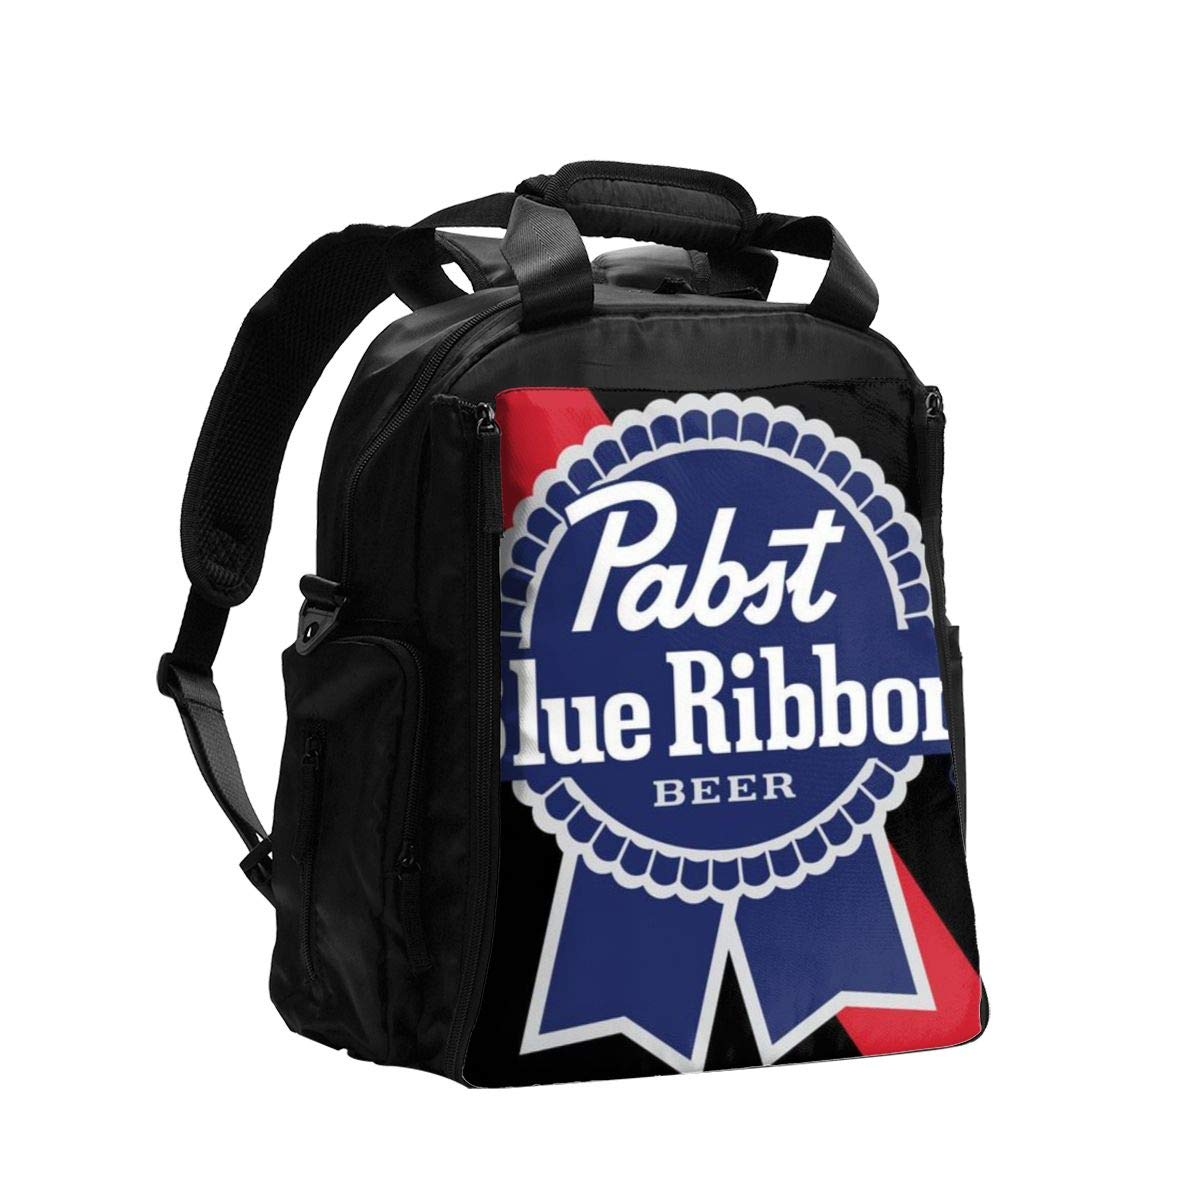 Pabst Blue Ribbon Beer Diaper Bag Backpack,Baby Travel Nappy Back Pack